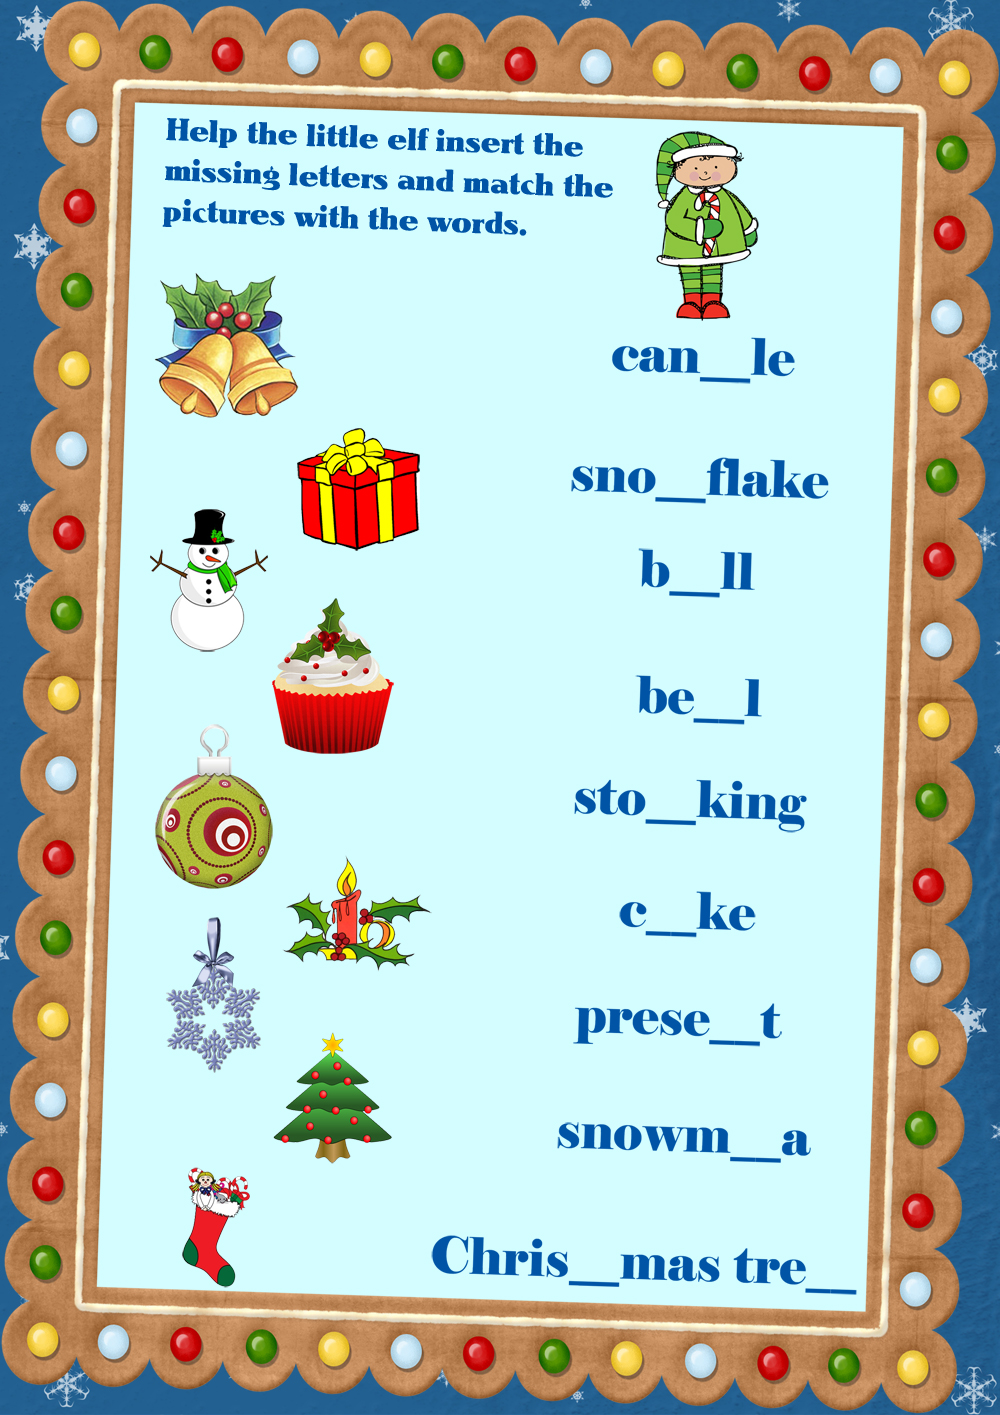 english for kids step by step november 2012